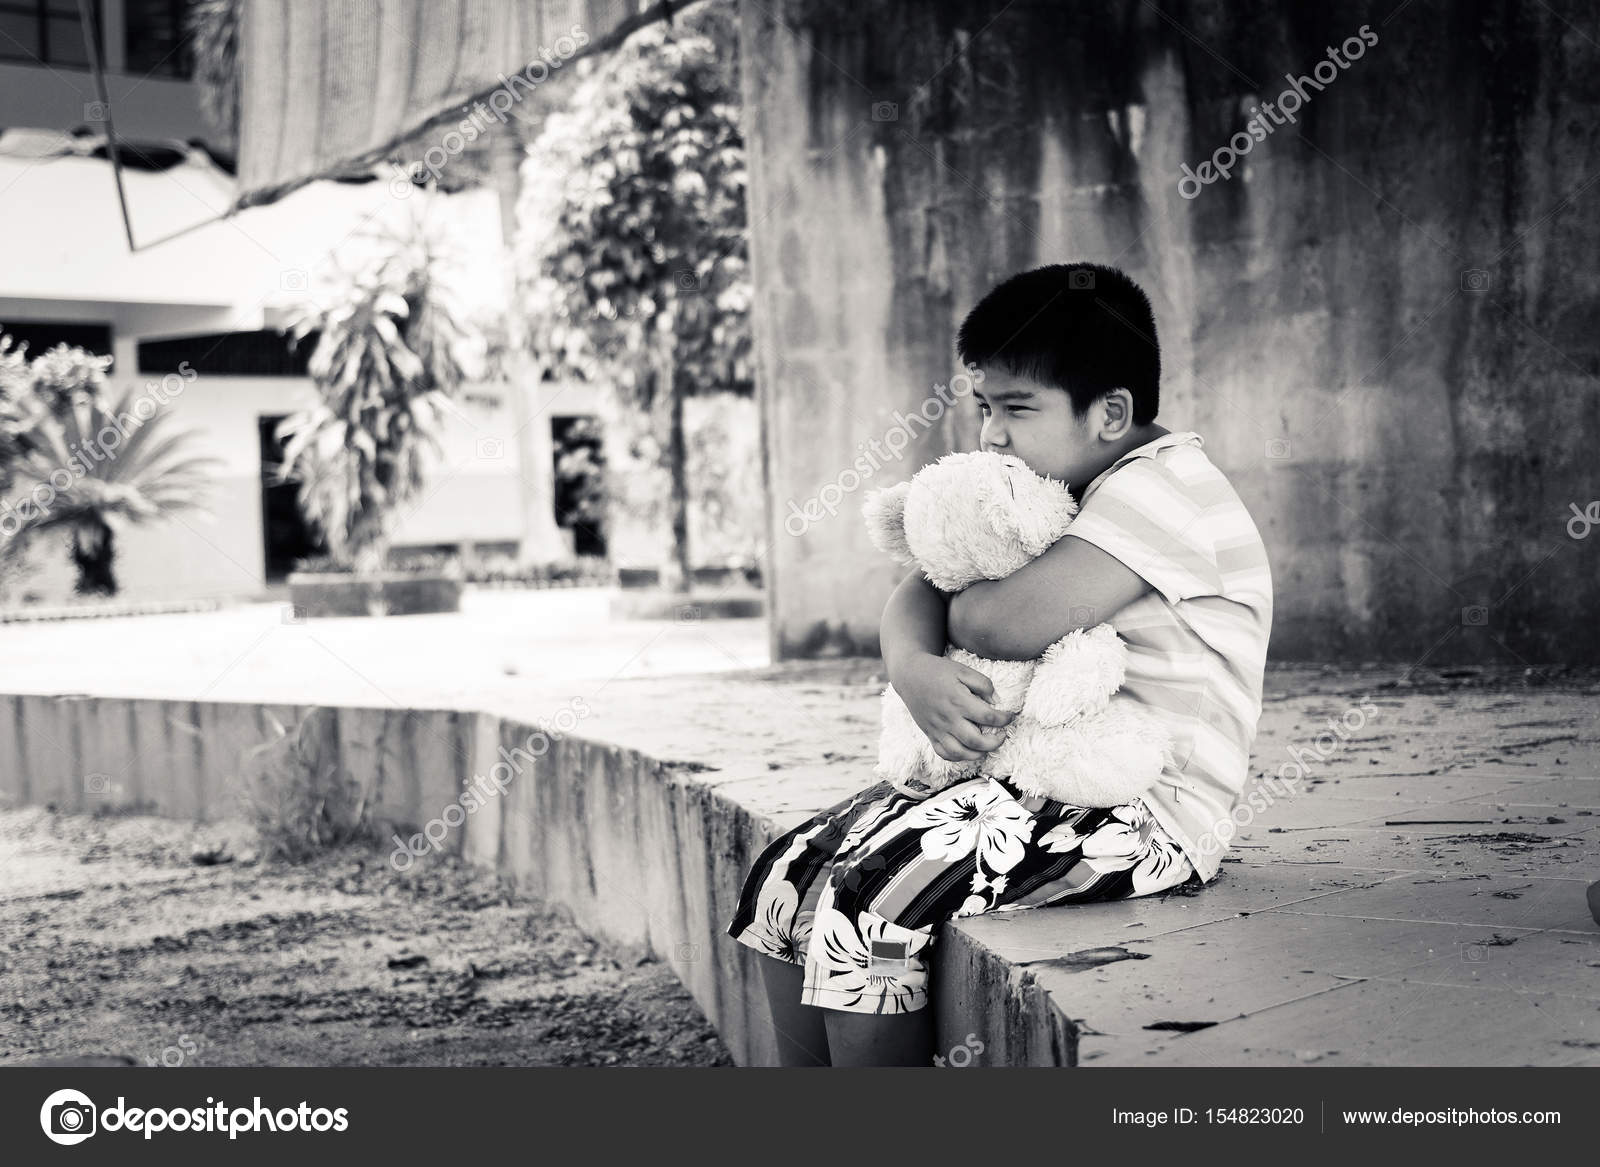 Cute asian boy crying alone in the park black and white tone photo by